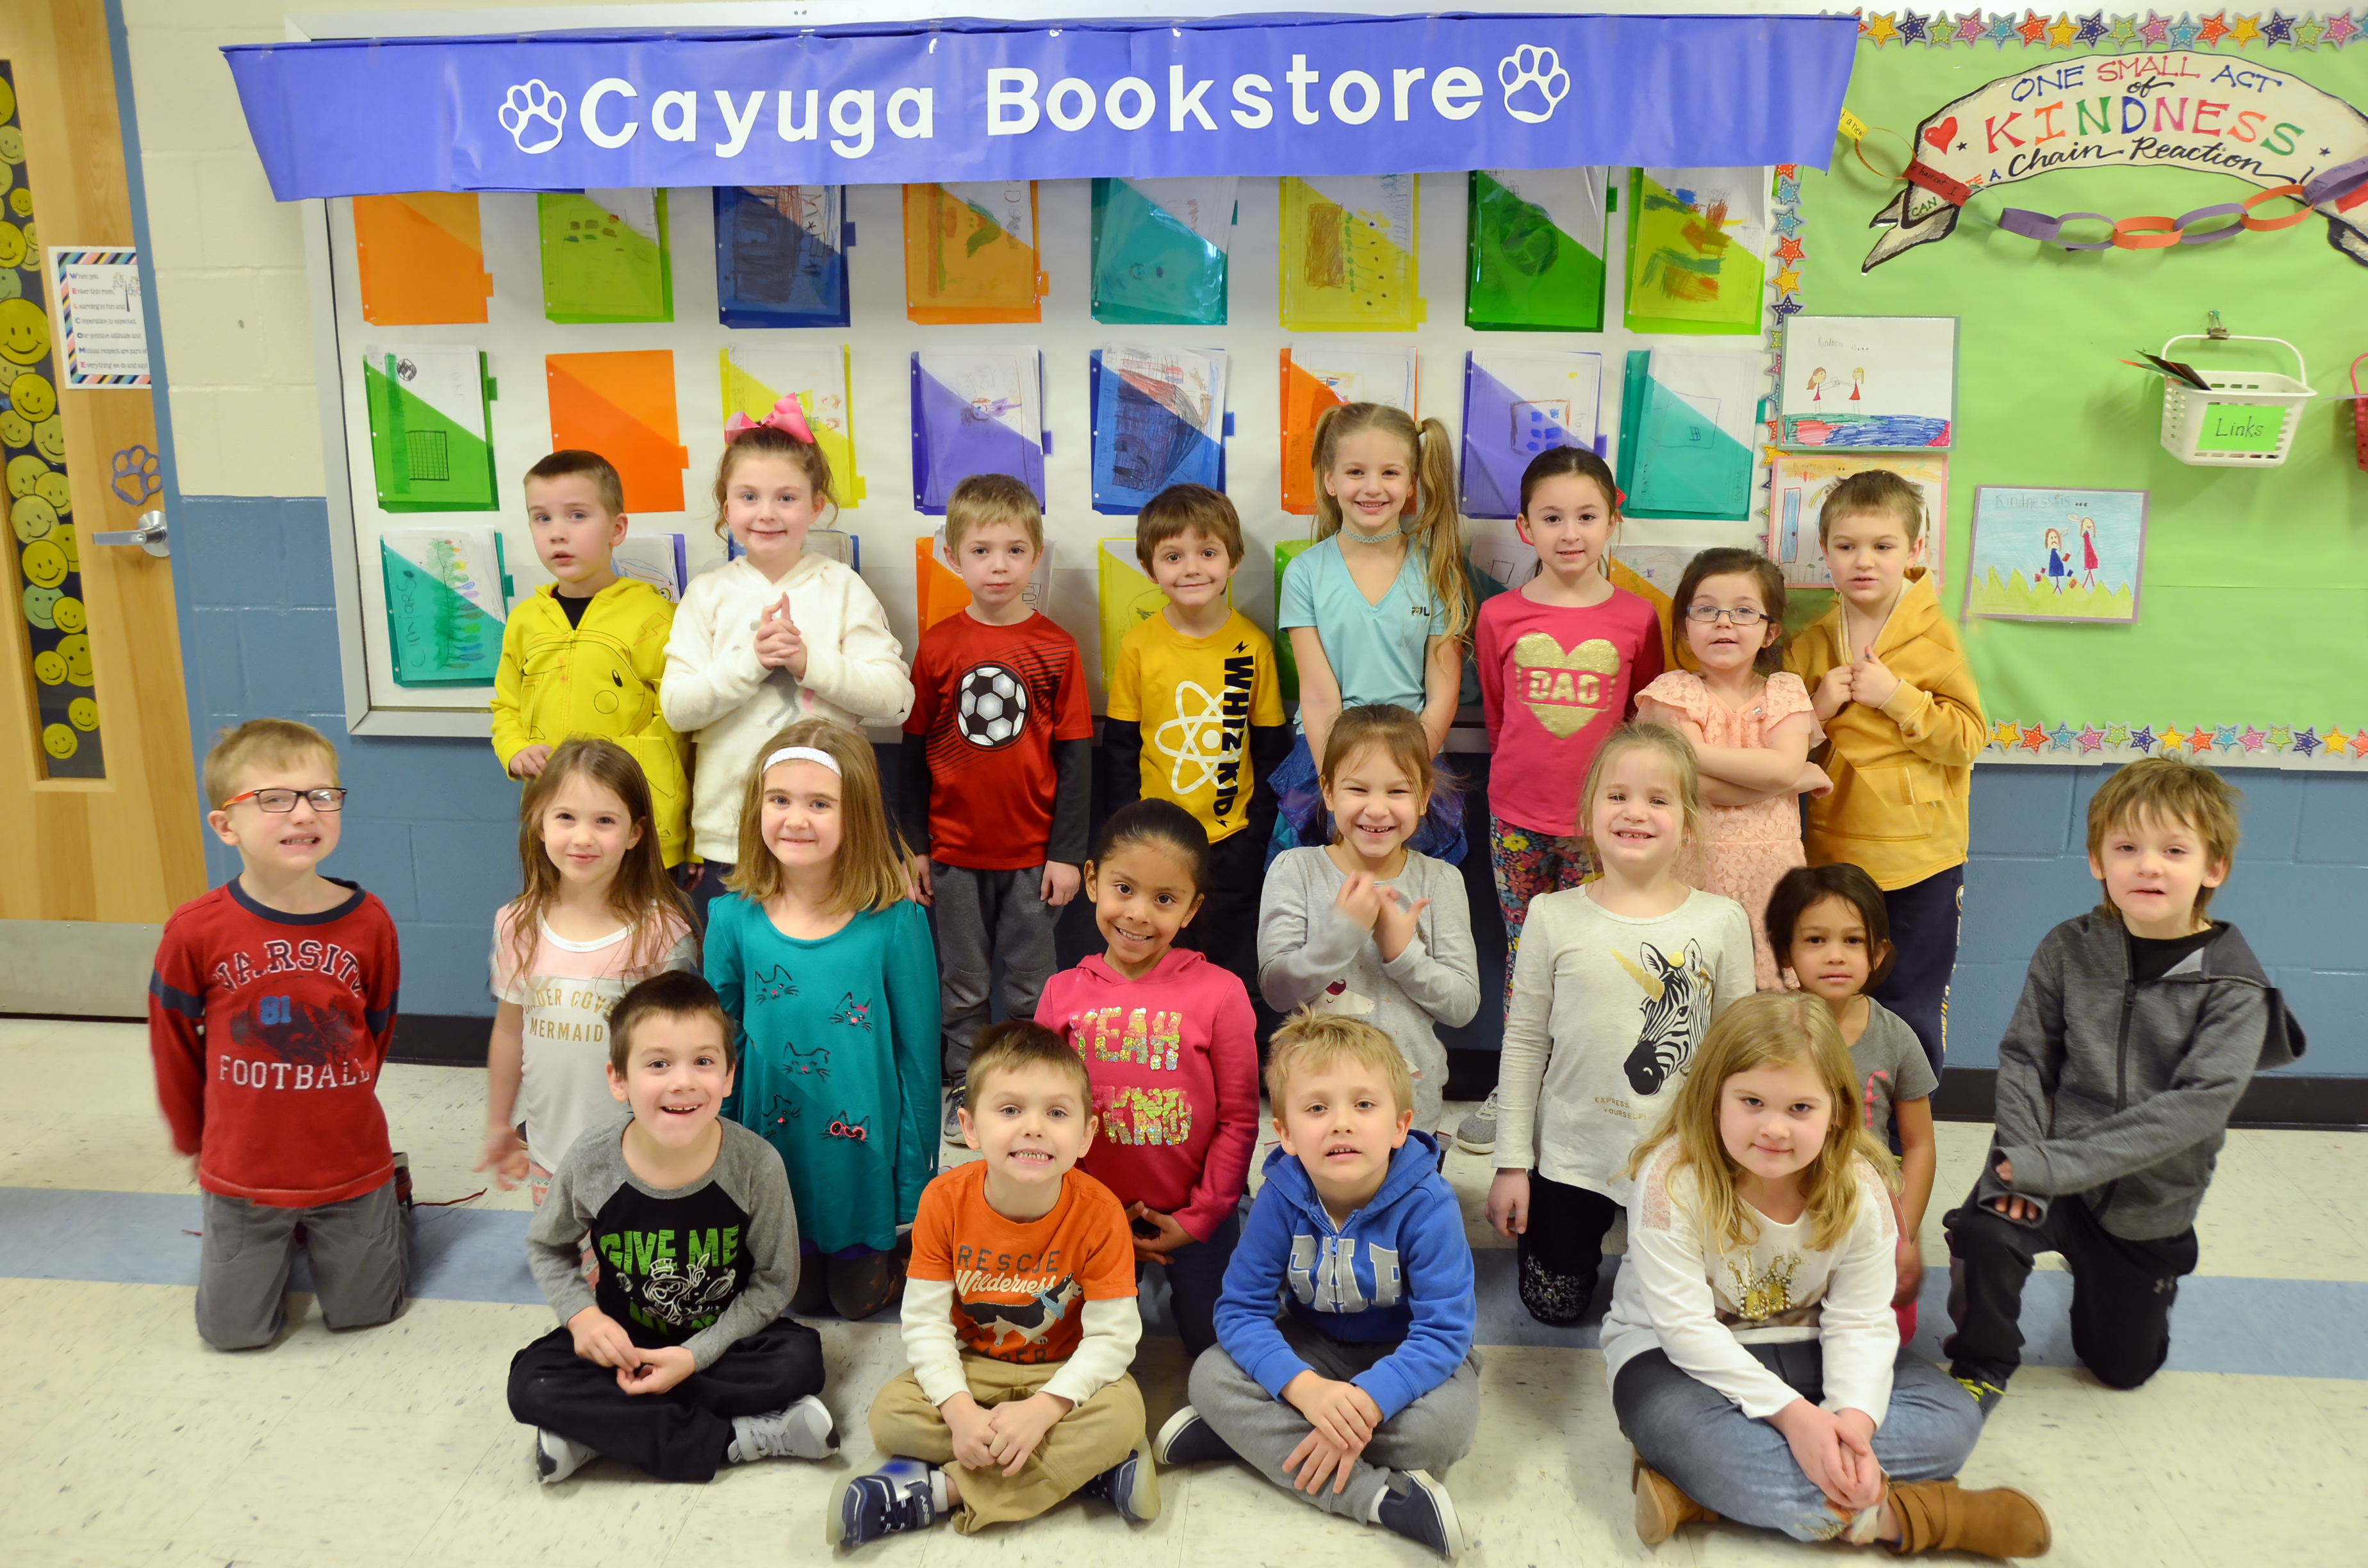 Cayuga Students open their own bookstore.